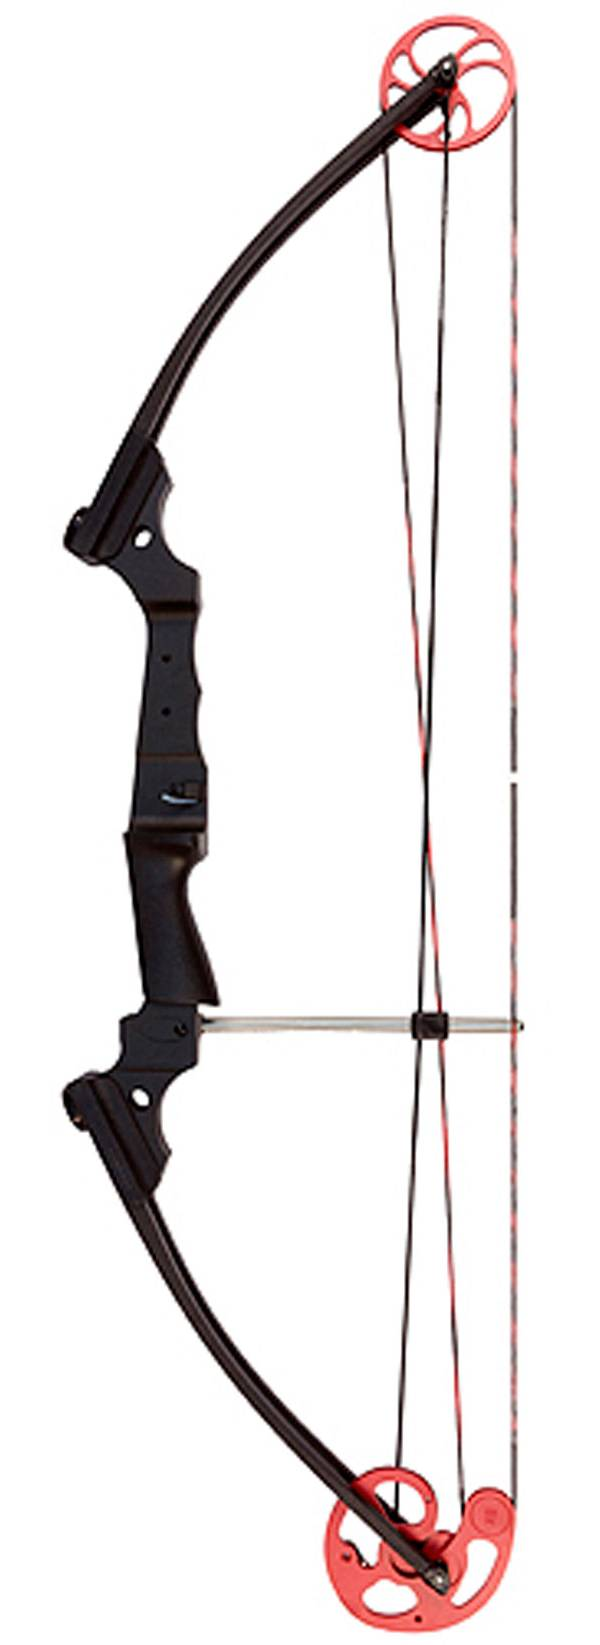 Genesis Youth Compound Bow Kit – Black product image